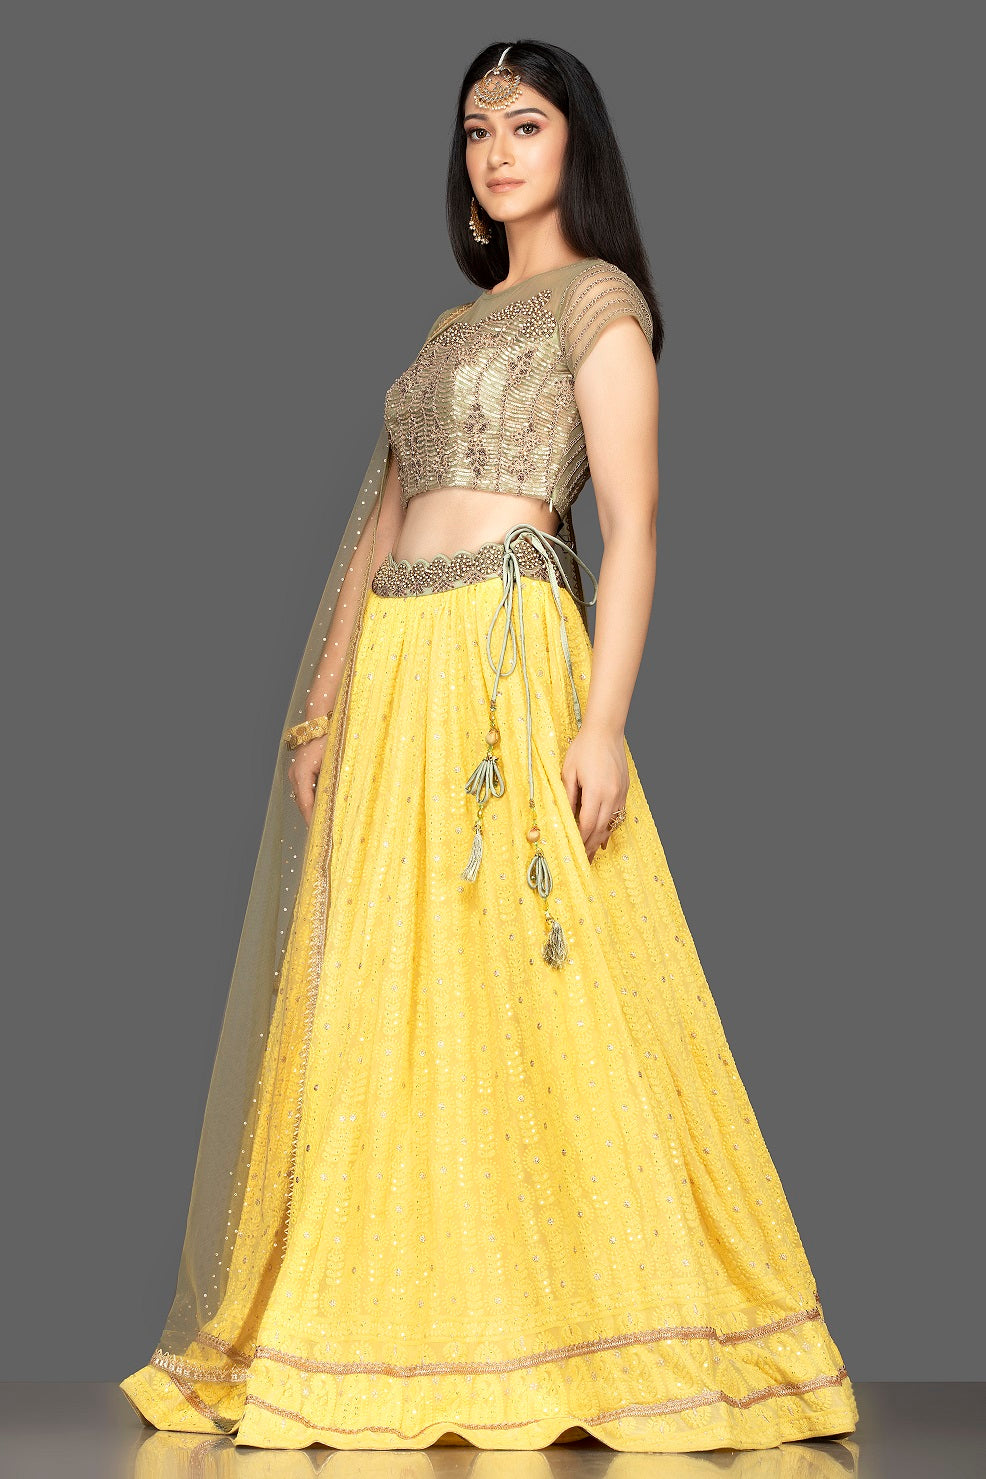 Buy lovely yellow and golden Lucknowi work georgette lehenga online in USA with net dupatta. Look radiant on weddings and special occasions in splendid designer lehengas crafted with finest embroideries and stunning silhouettes from Pure Elegance Indian fashion boutique in USA.-side